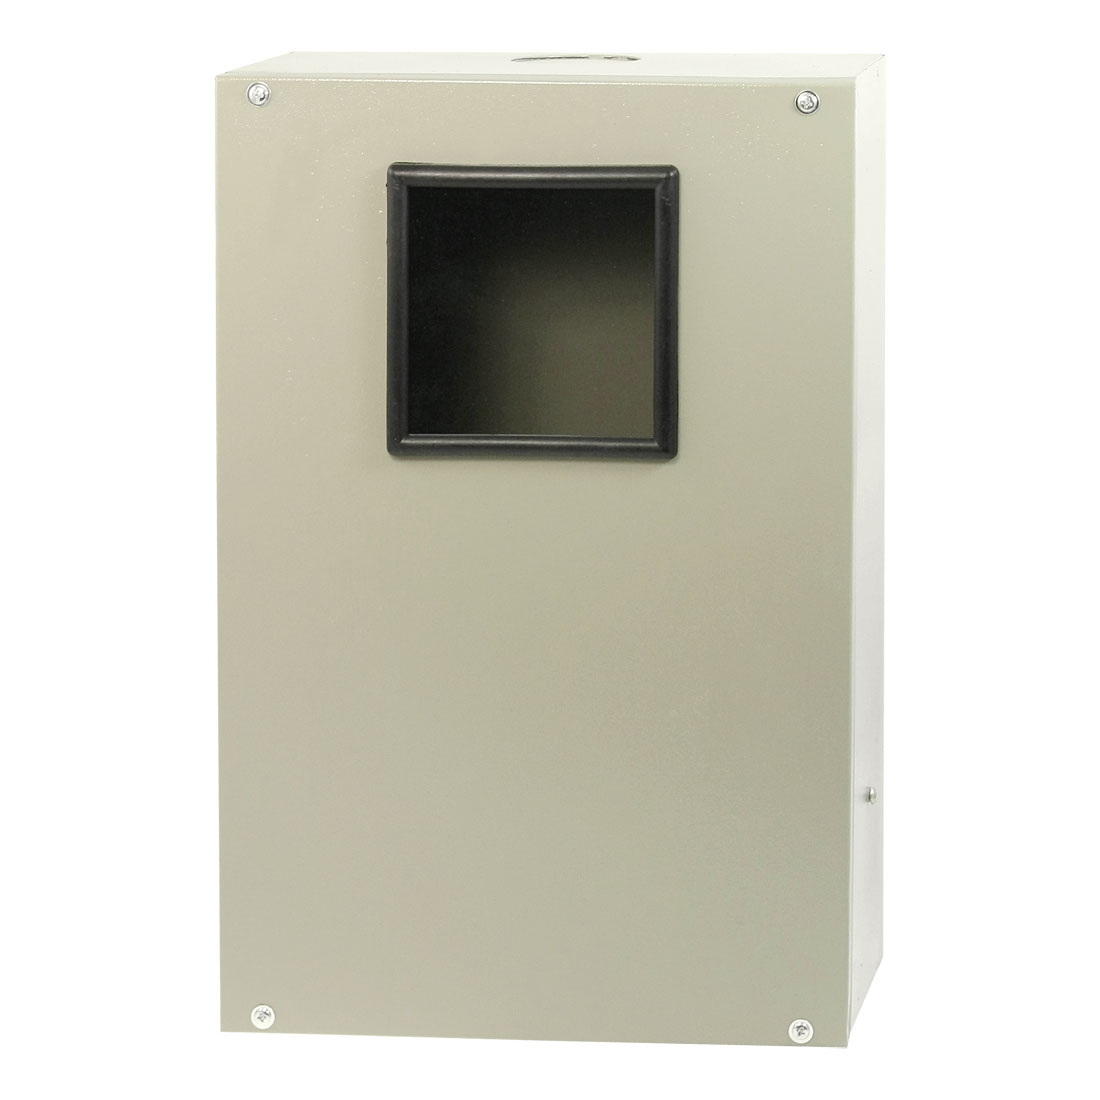 Gray Metal 3 Phase Clear Window Electricity Meter Box 38 x 25 x 14cm